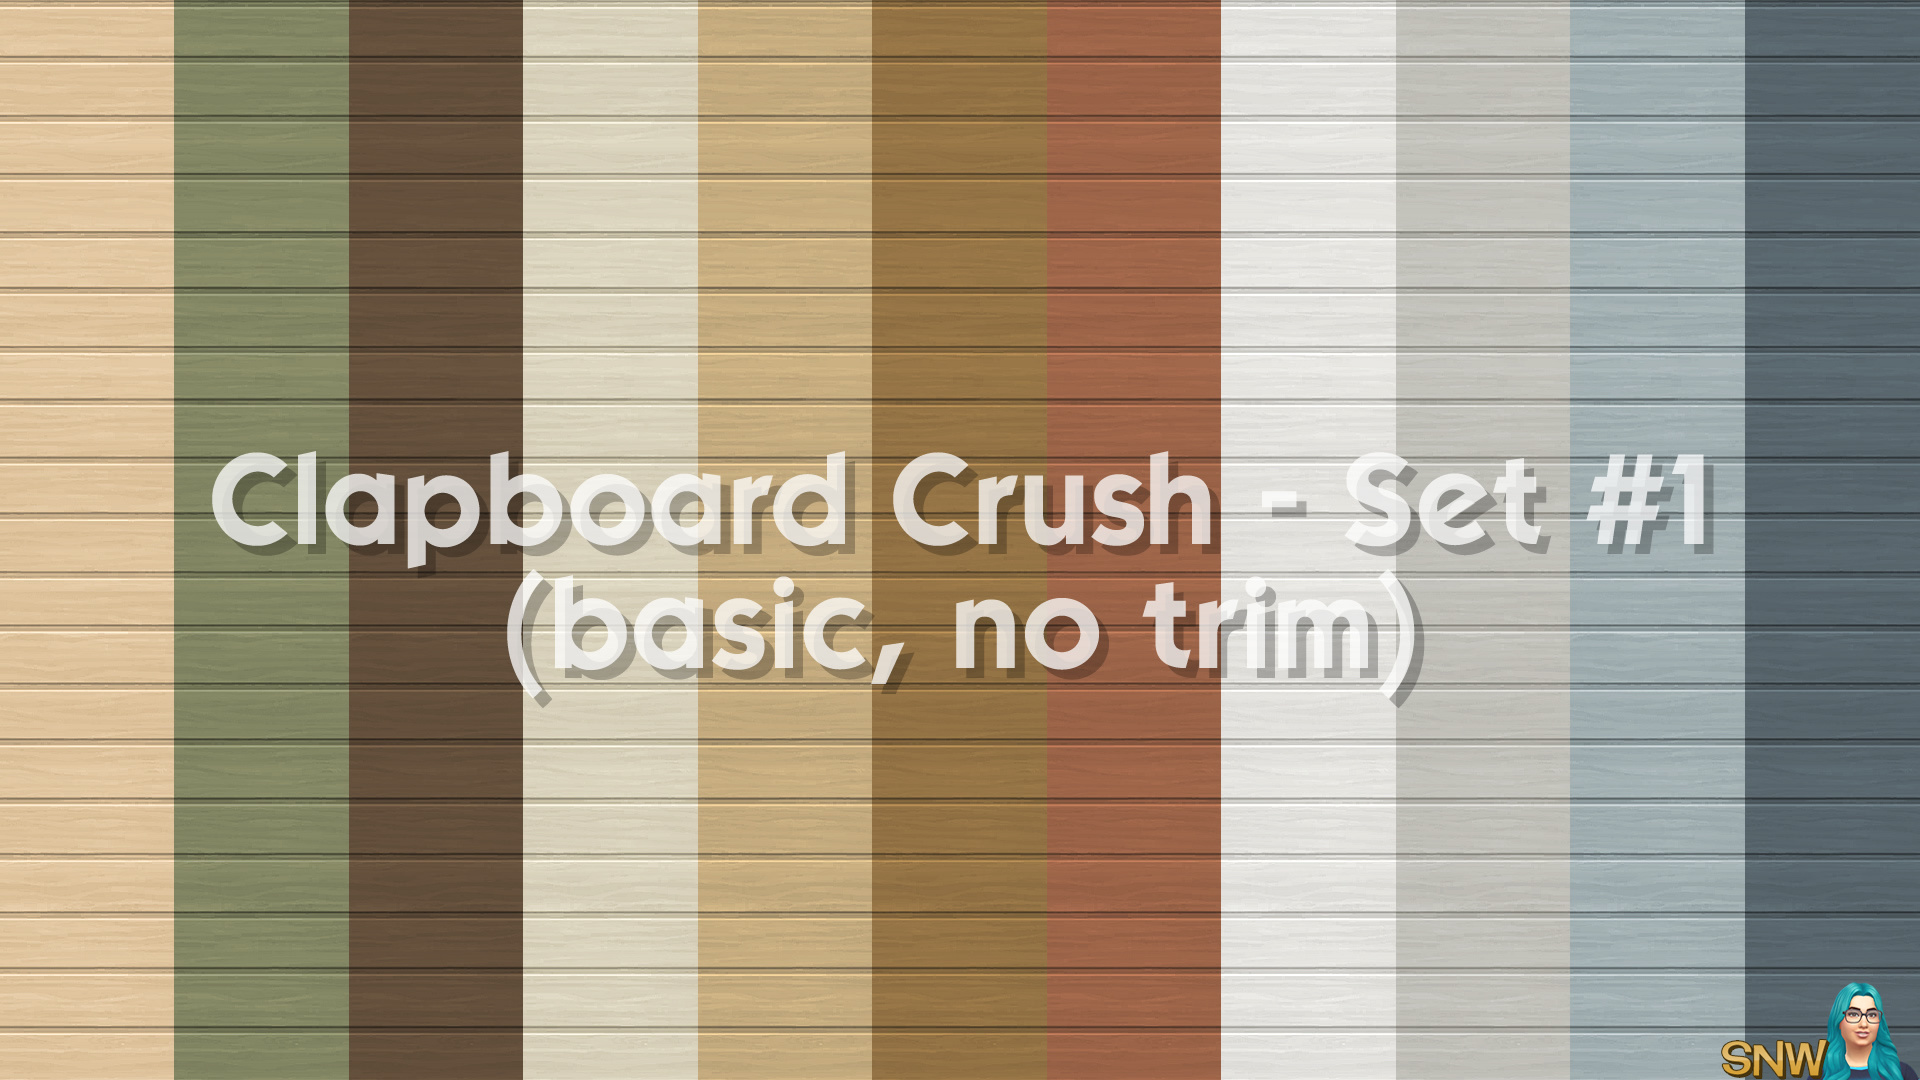 Clapboard Crush Siding Walls Set #1 Basic